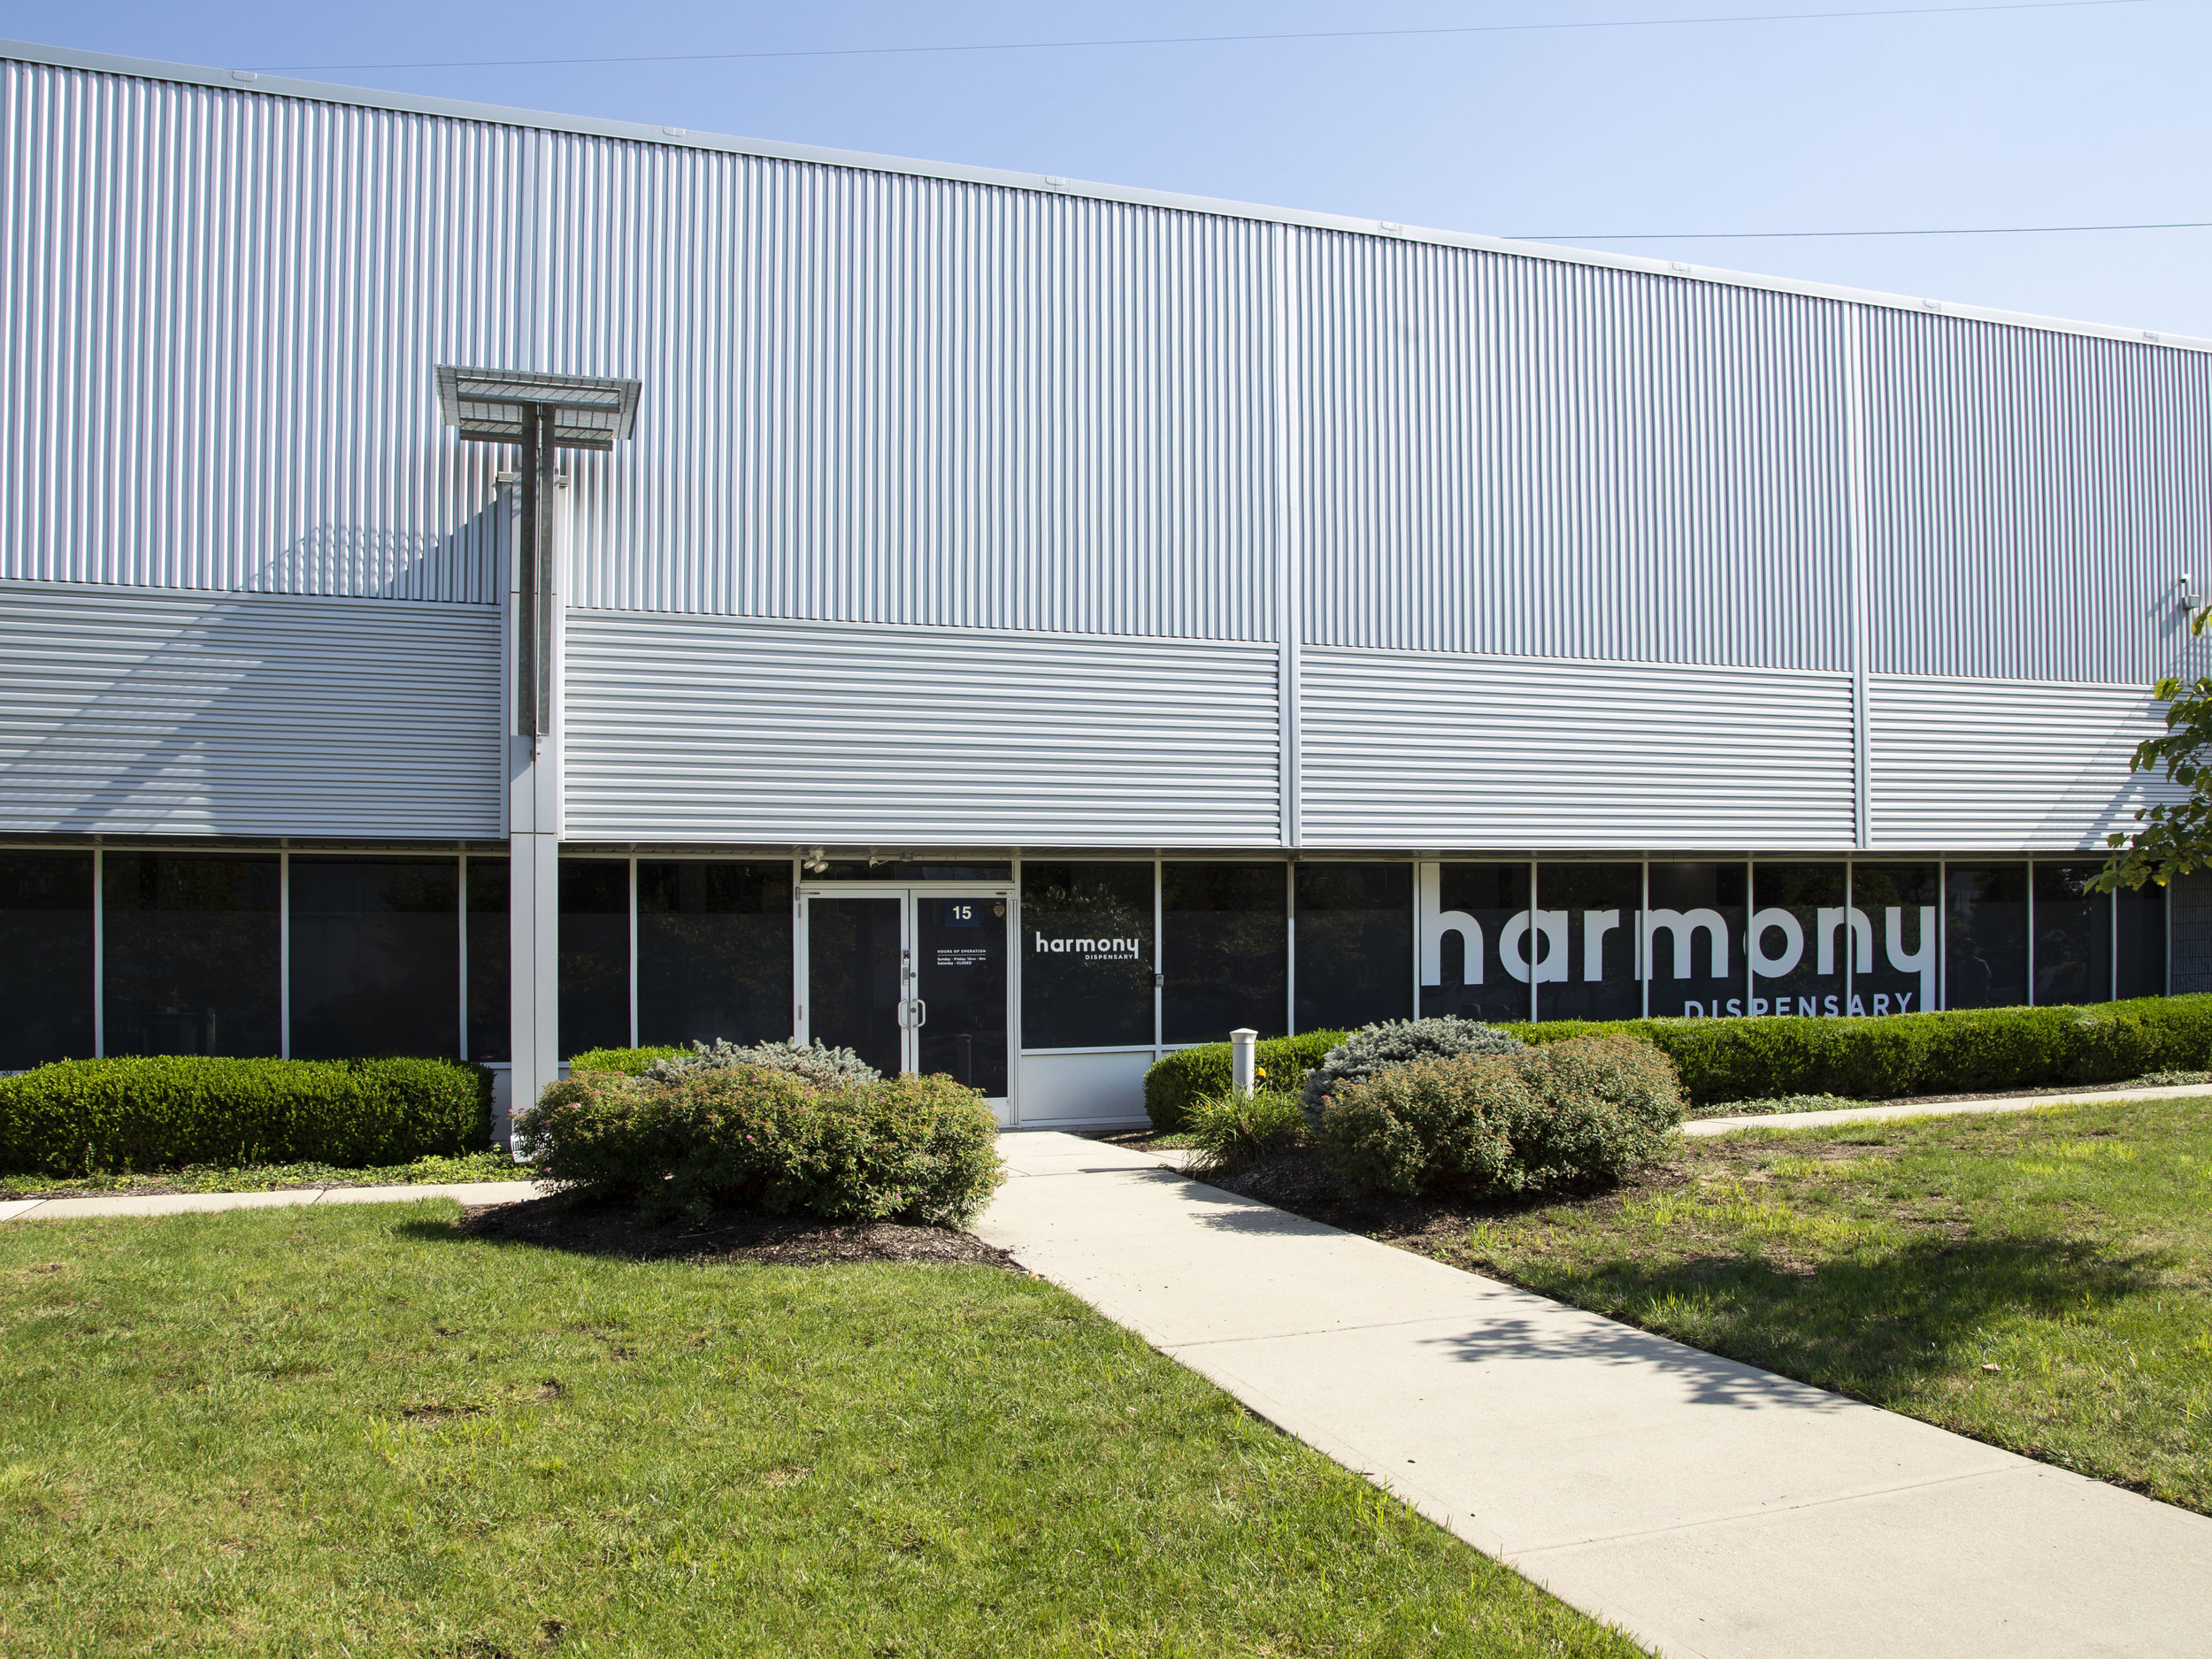 Harmony_Dispensary_Medical_Marijuana_Exterior9678.jpg